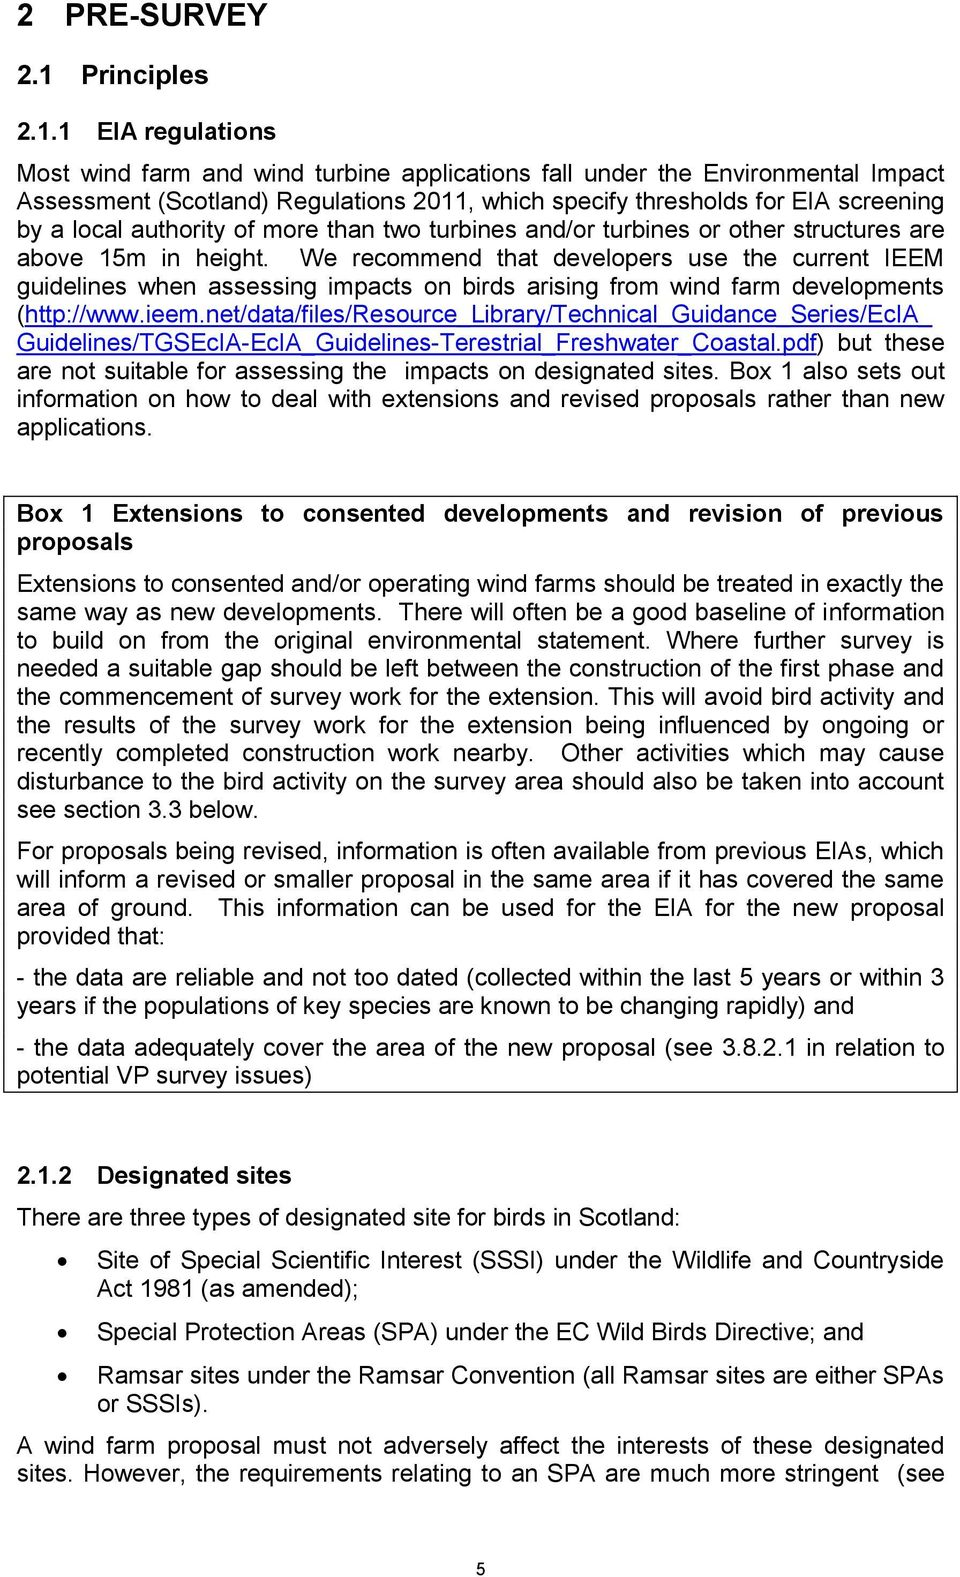 1 EIA regulations Most wind farm and wind turbine applications fall under the Environmental Impact Assessment (Scotland) Regulations 2011, which specify thresholds for EIA screening by a local